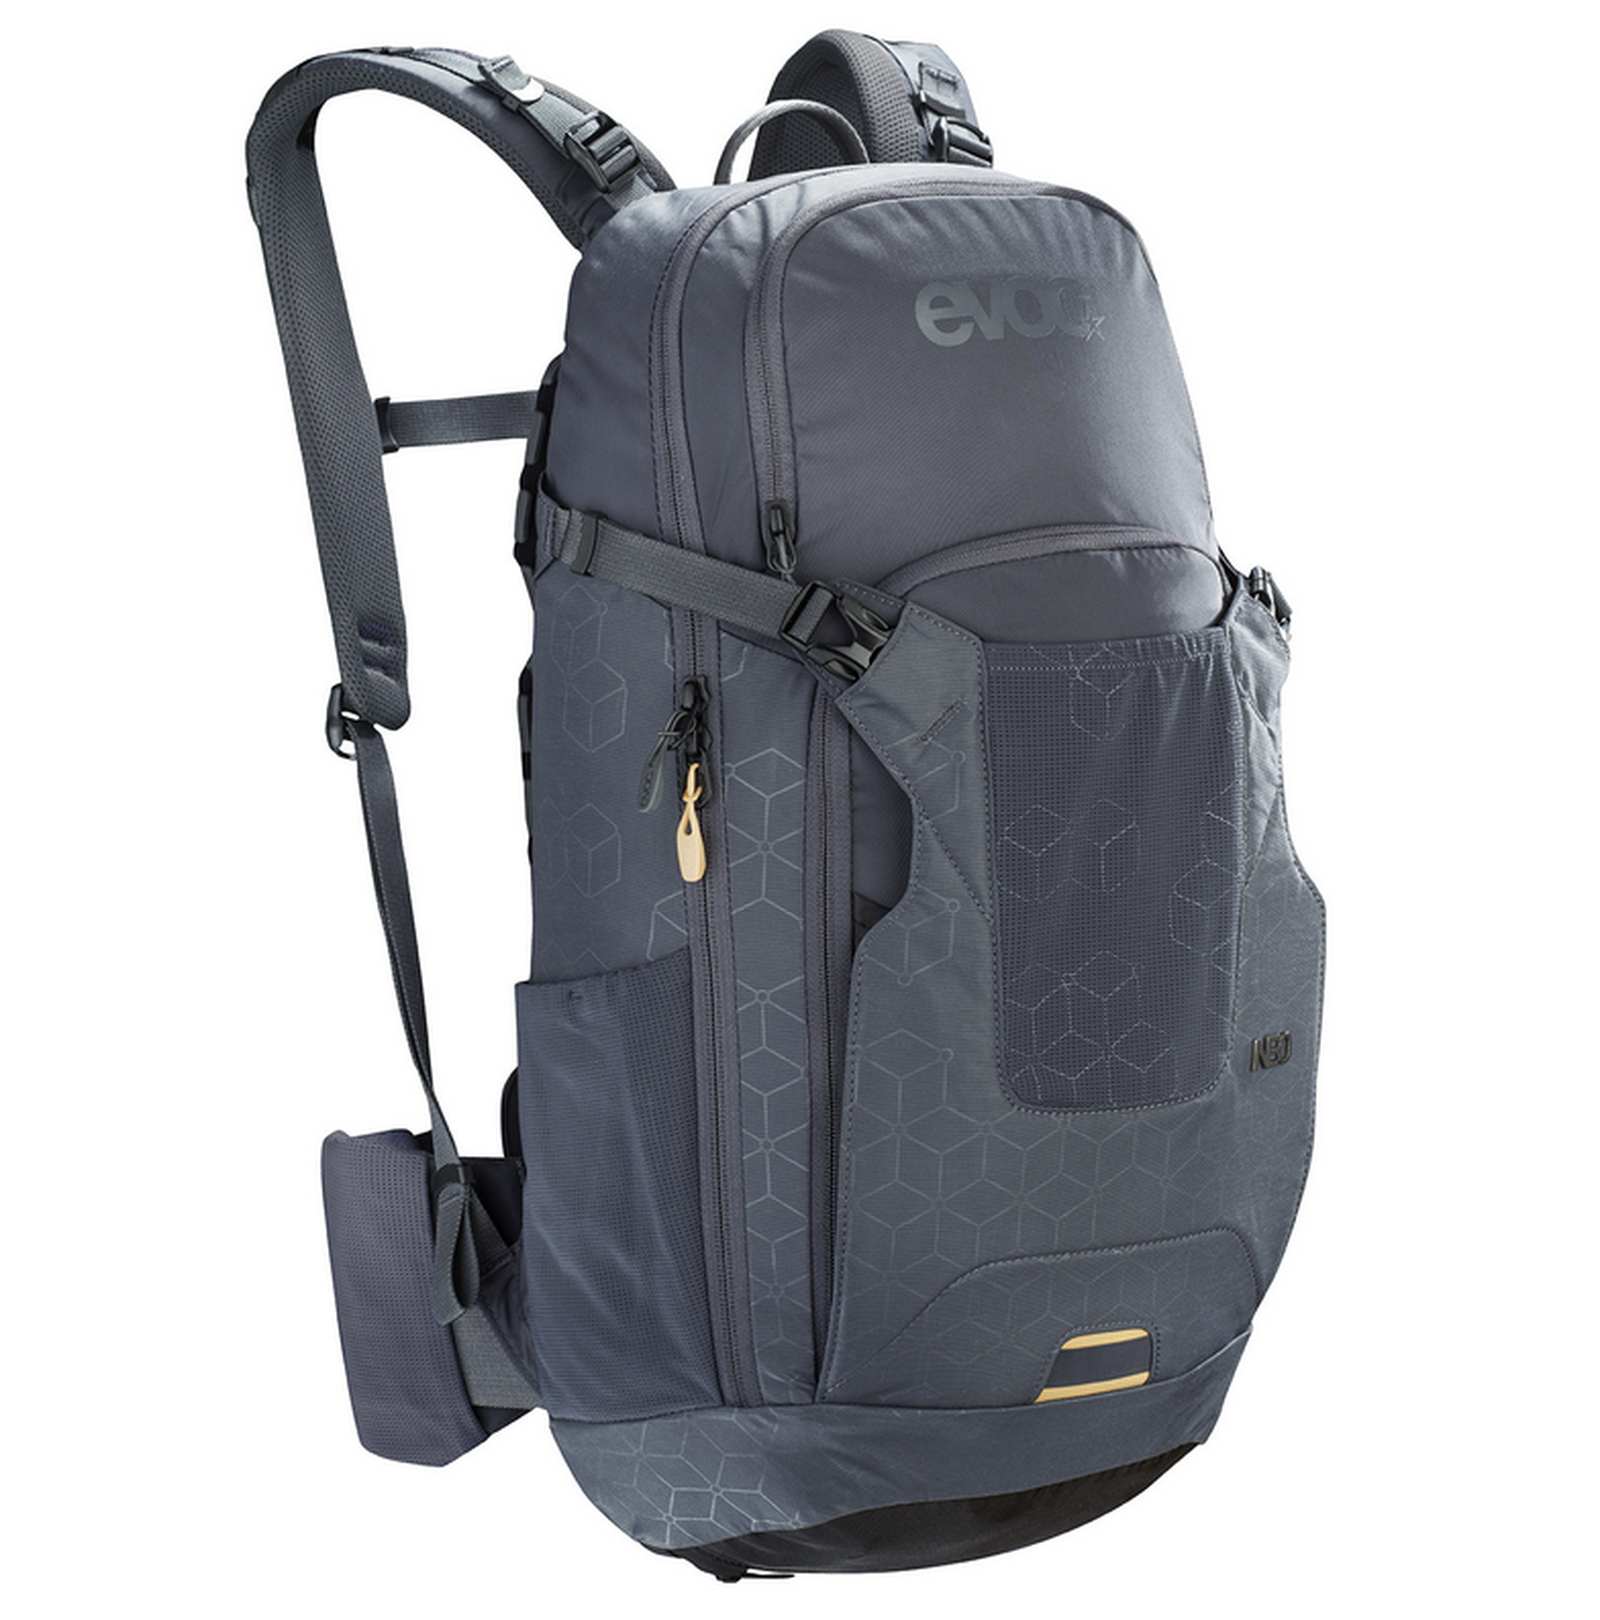 Neo 16 L Backpack